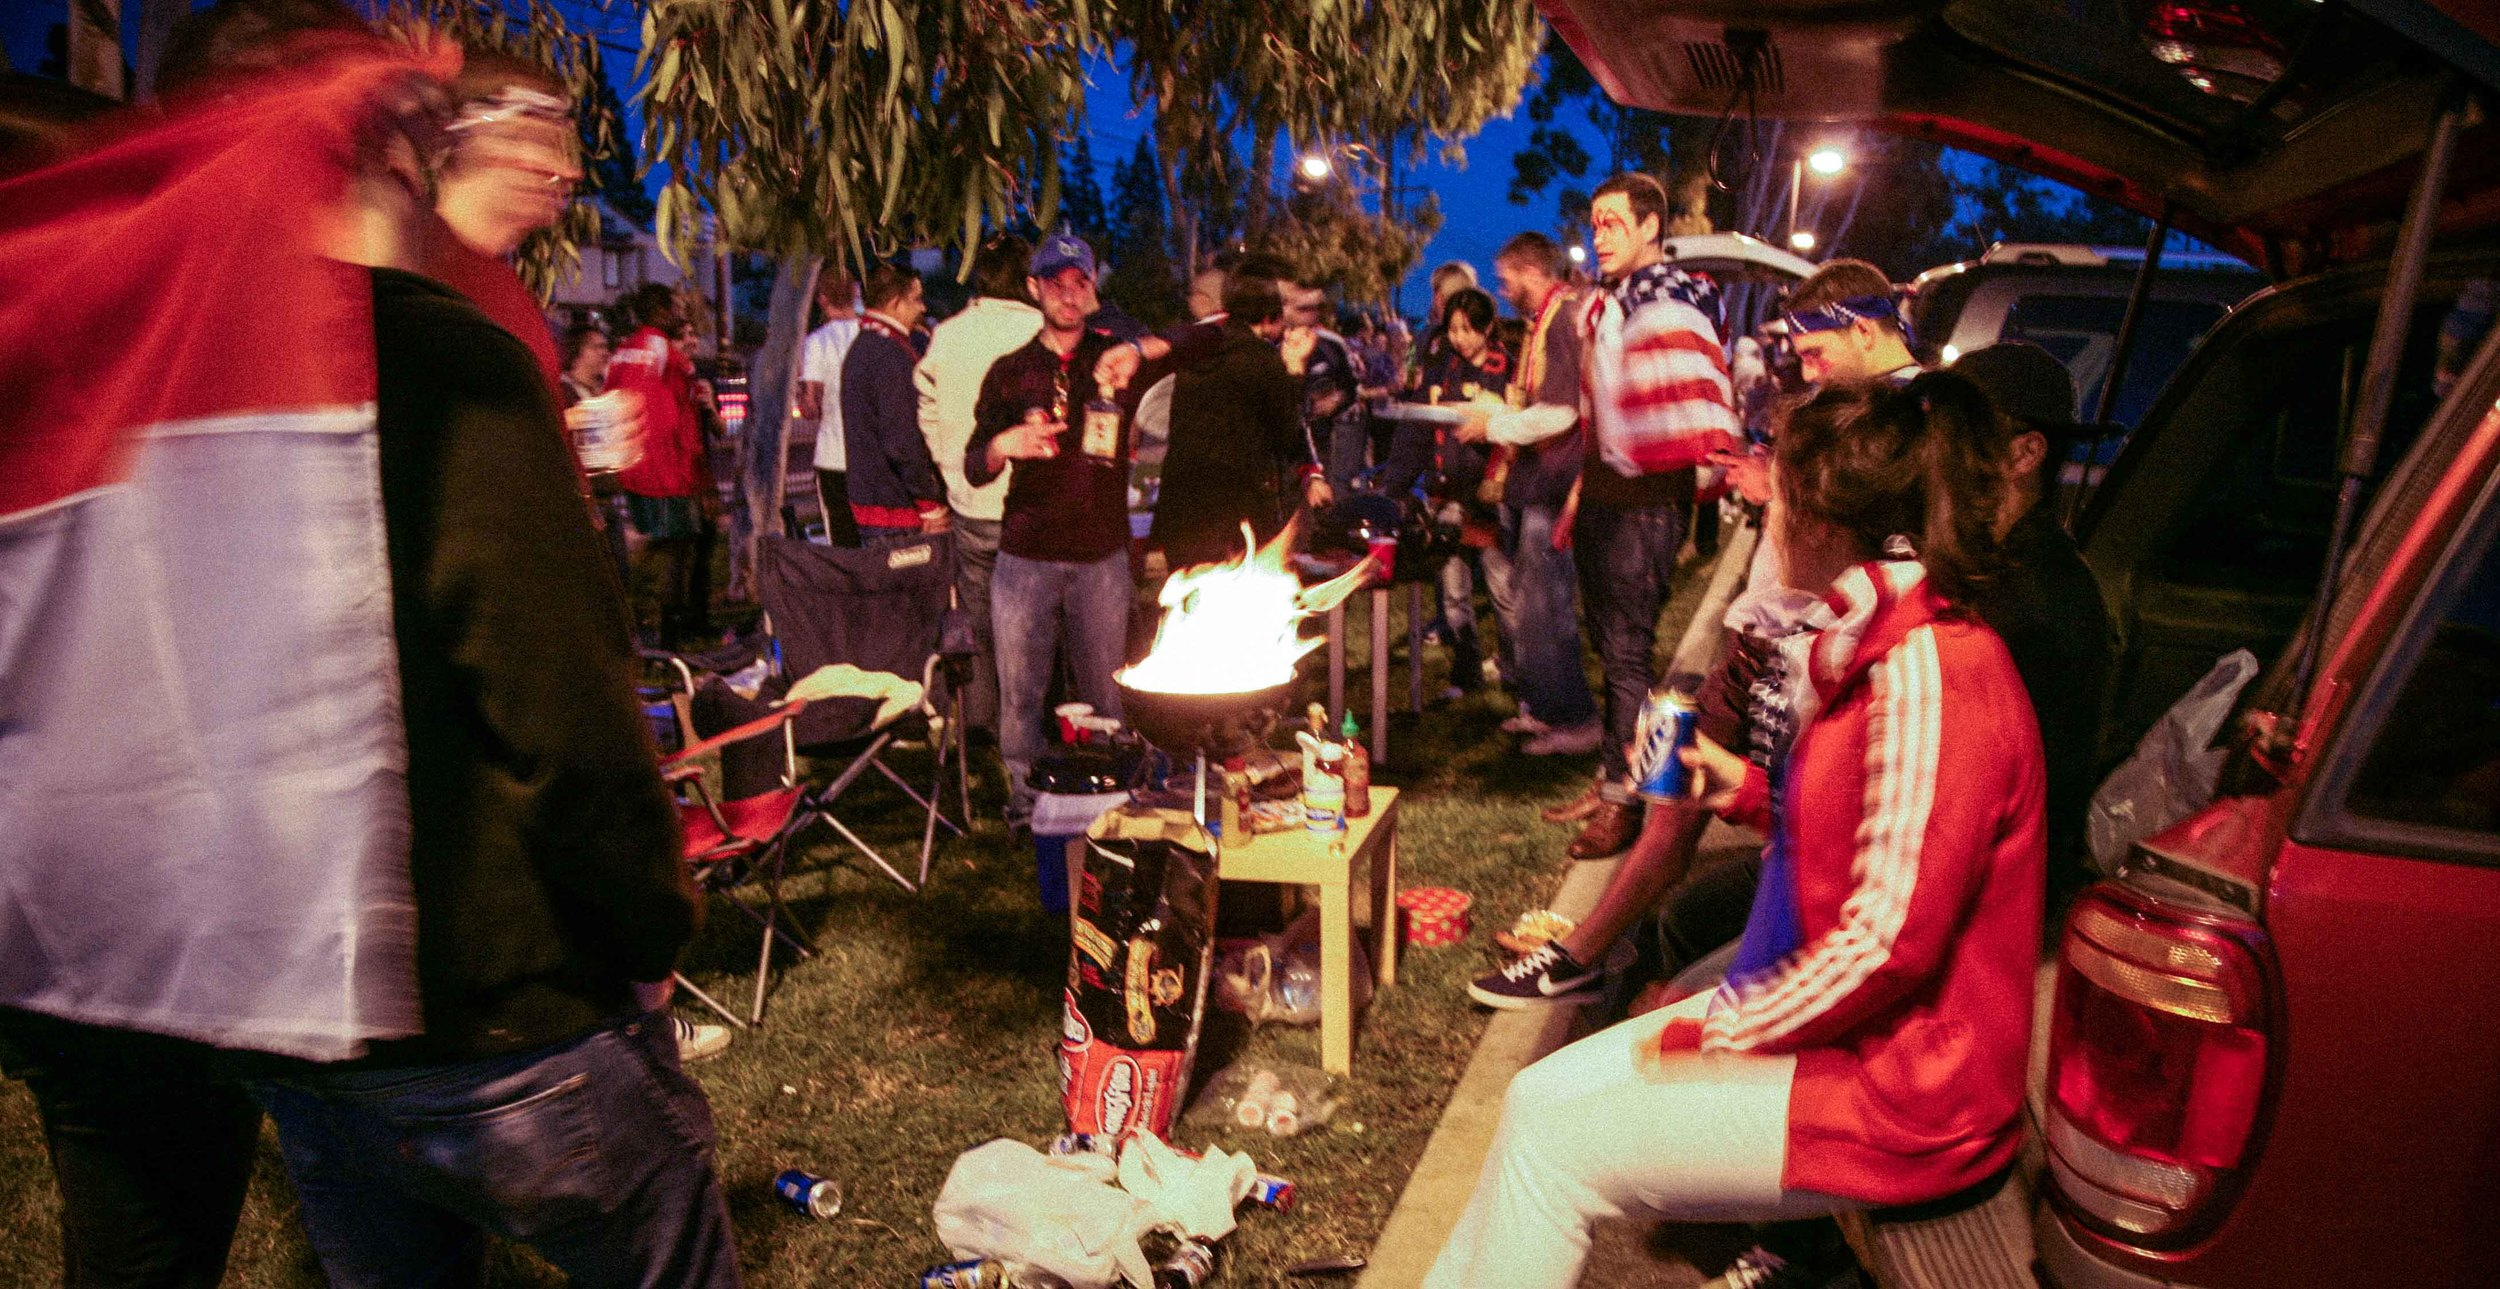 Our tailgate party on January 22, 2011 for USMNT v Chile at the Home Depot Center in Los Angeles.